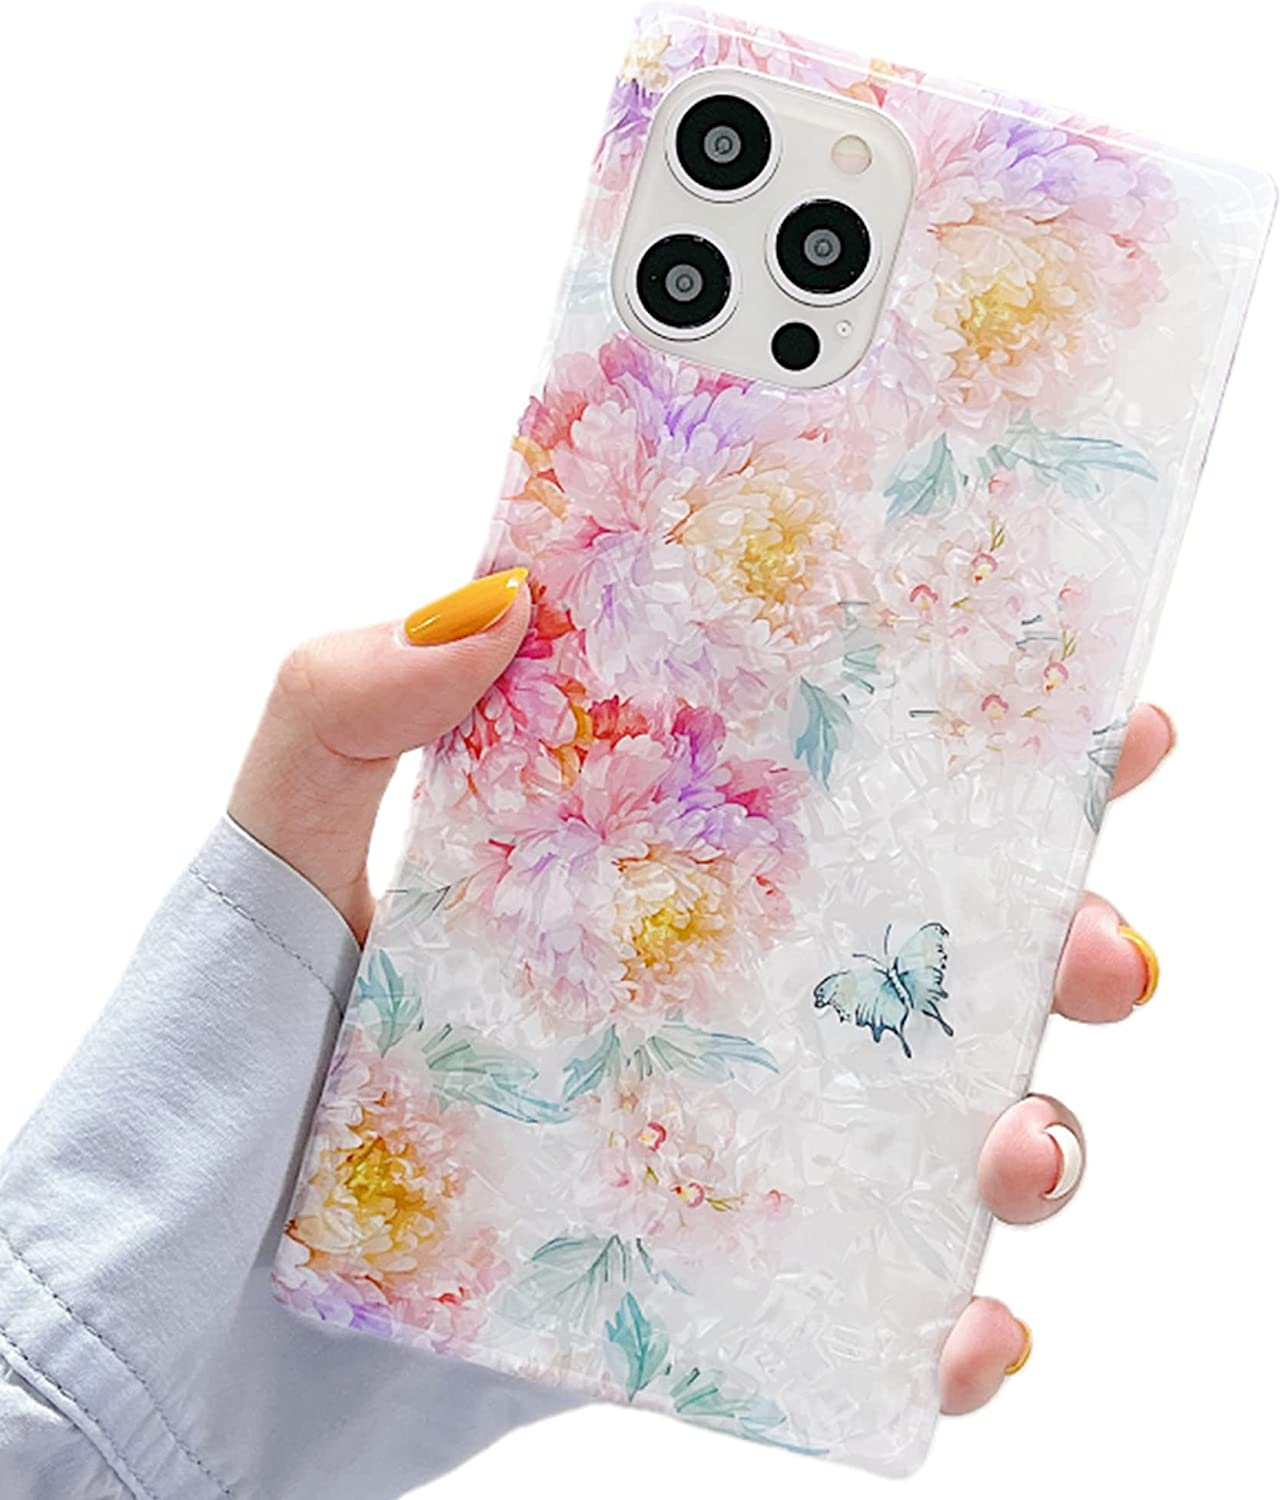 YTanazing Compatible with iPhone 12 Pro Max Square Case, Bling Shell Flower Pattern Soft Silicone Crystal Shockproof Bumper Cover for iPhone 12 Pro Max 6.7 inch Colorful Flower